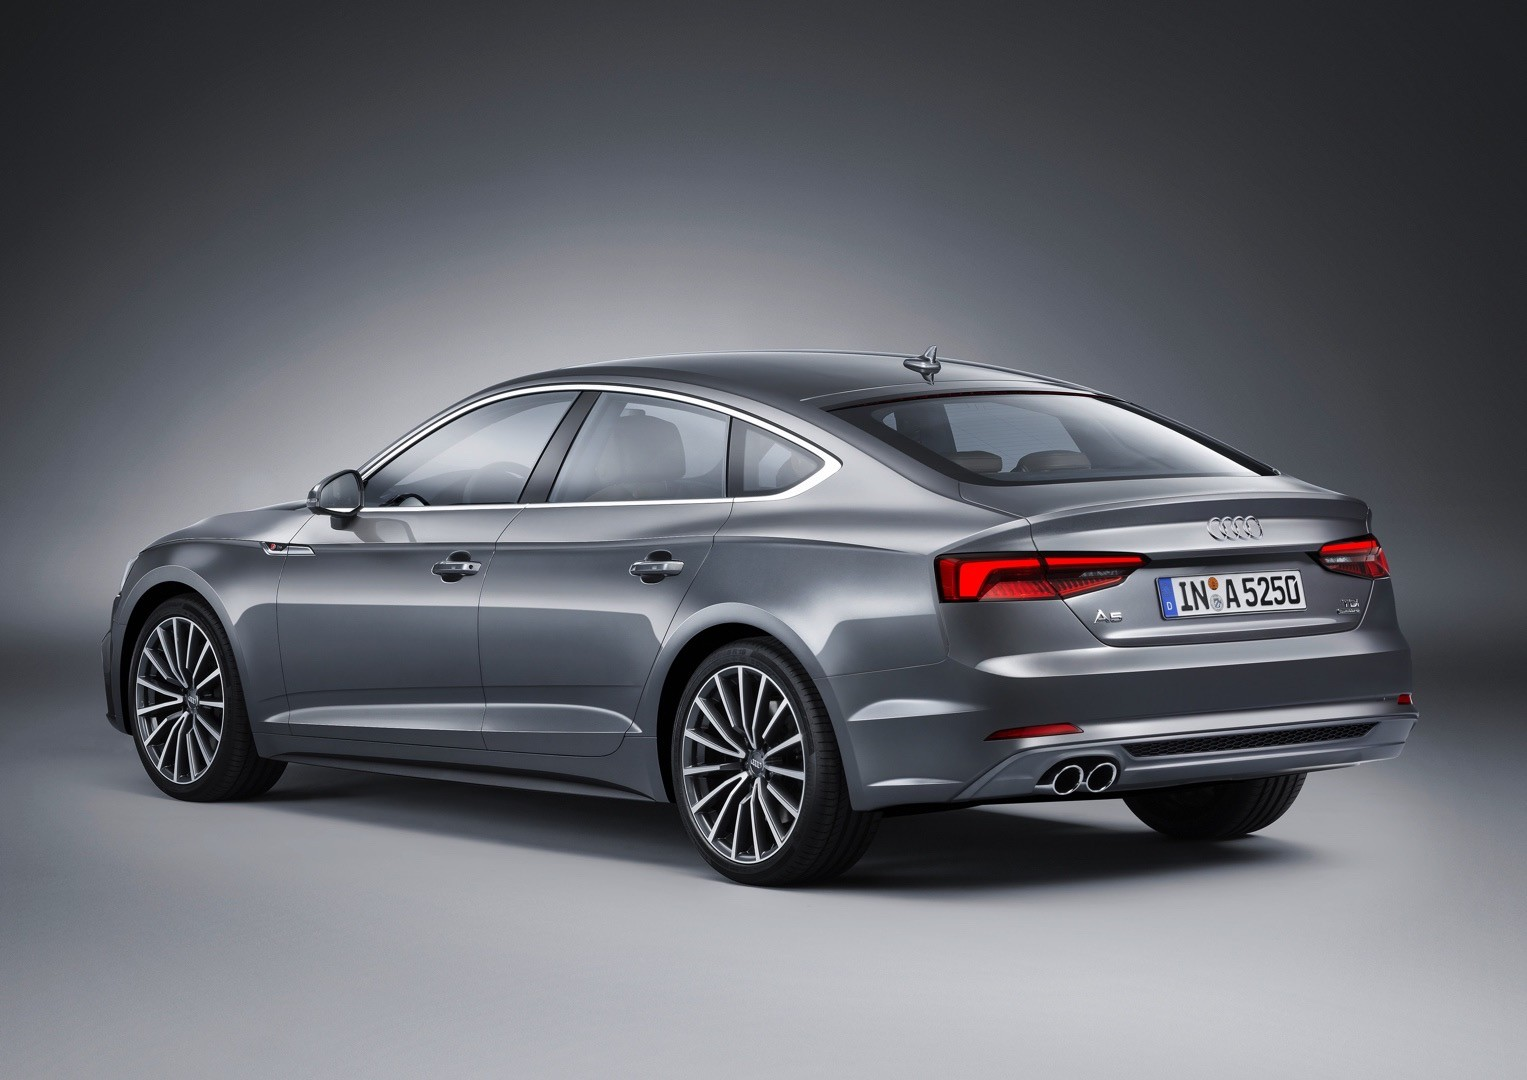 Audi A5 Avant Rendering Looks Like Something That Needs to Happen - autoevolution